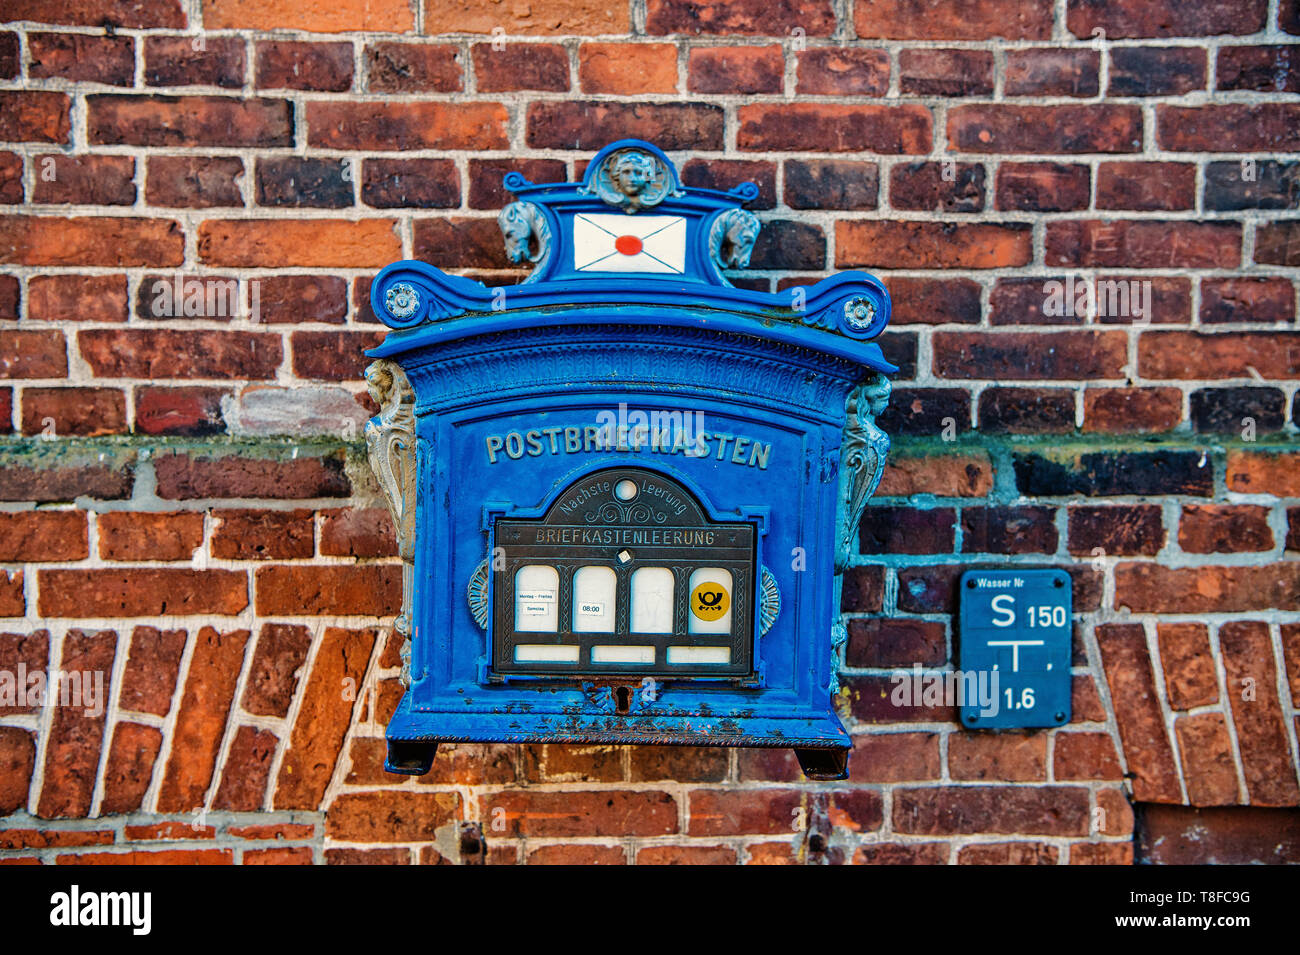 Post box of blue painted metal on red brick wall background. Correspondence, collection, delivery, mail, service concept. - Stock Image